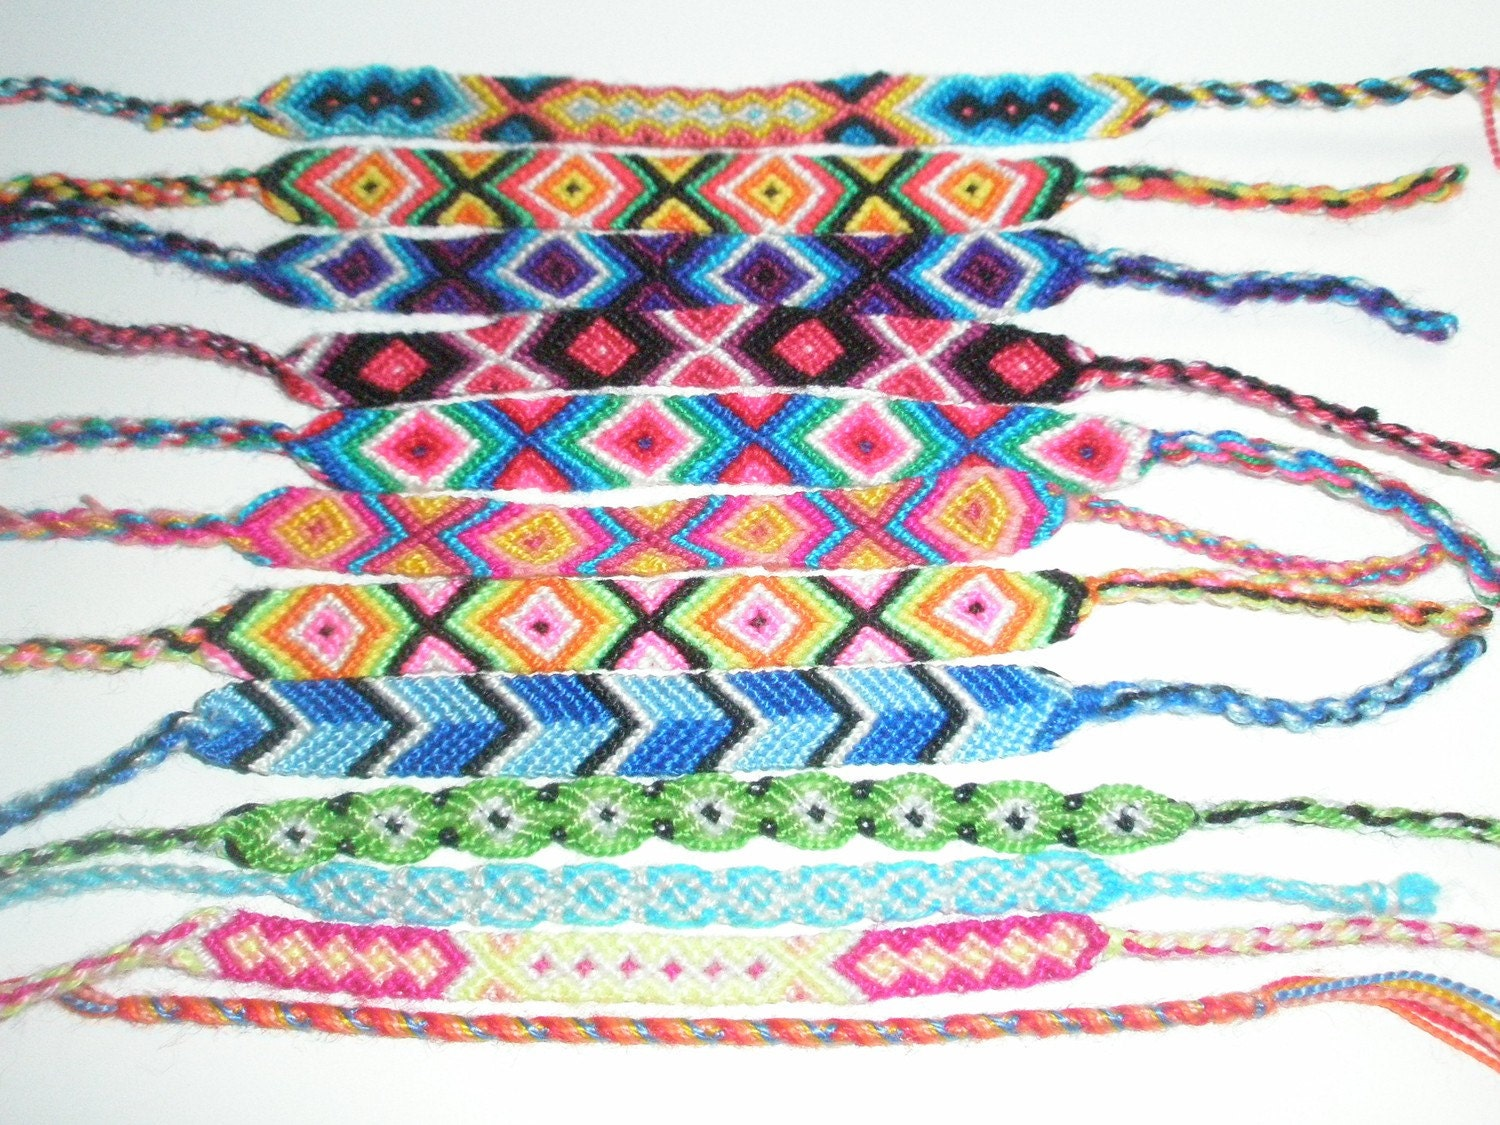 How to Make a diamond patterned woven friendship bracelet « Jewelry